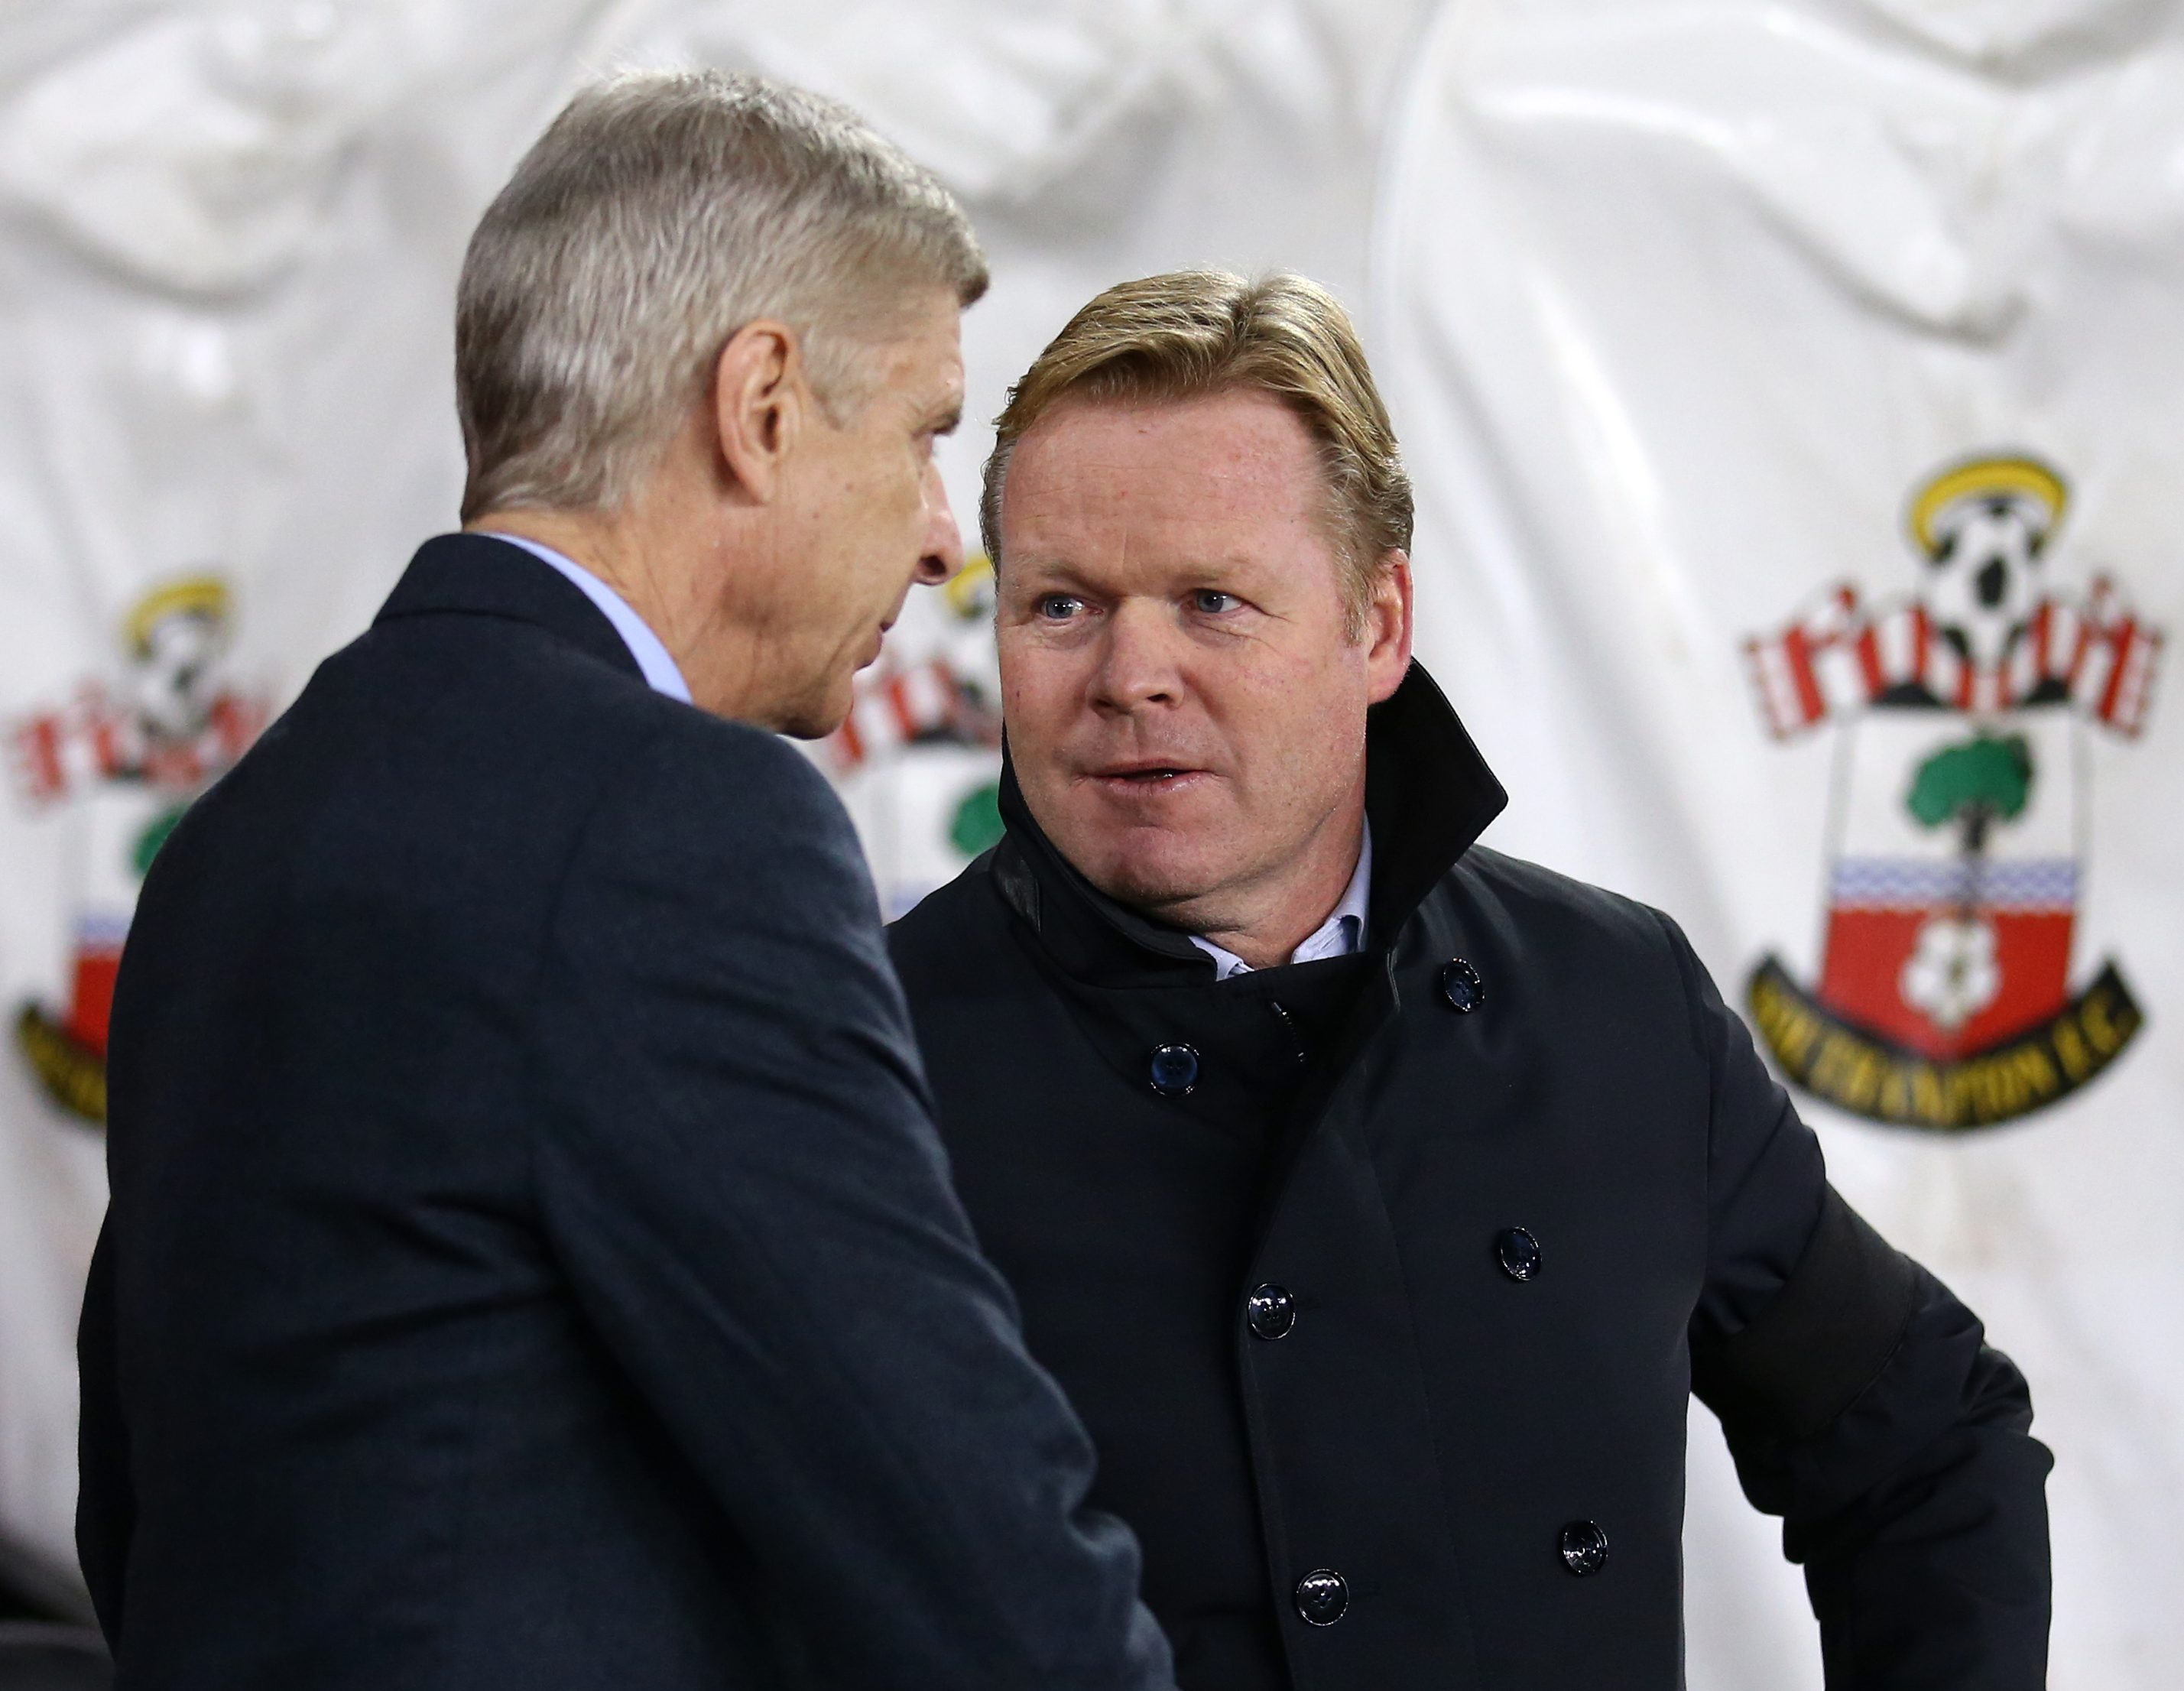 5 reasons Ronald Koeman would be a great choice for next Arsenal manager